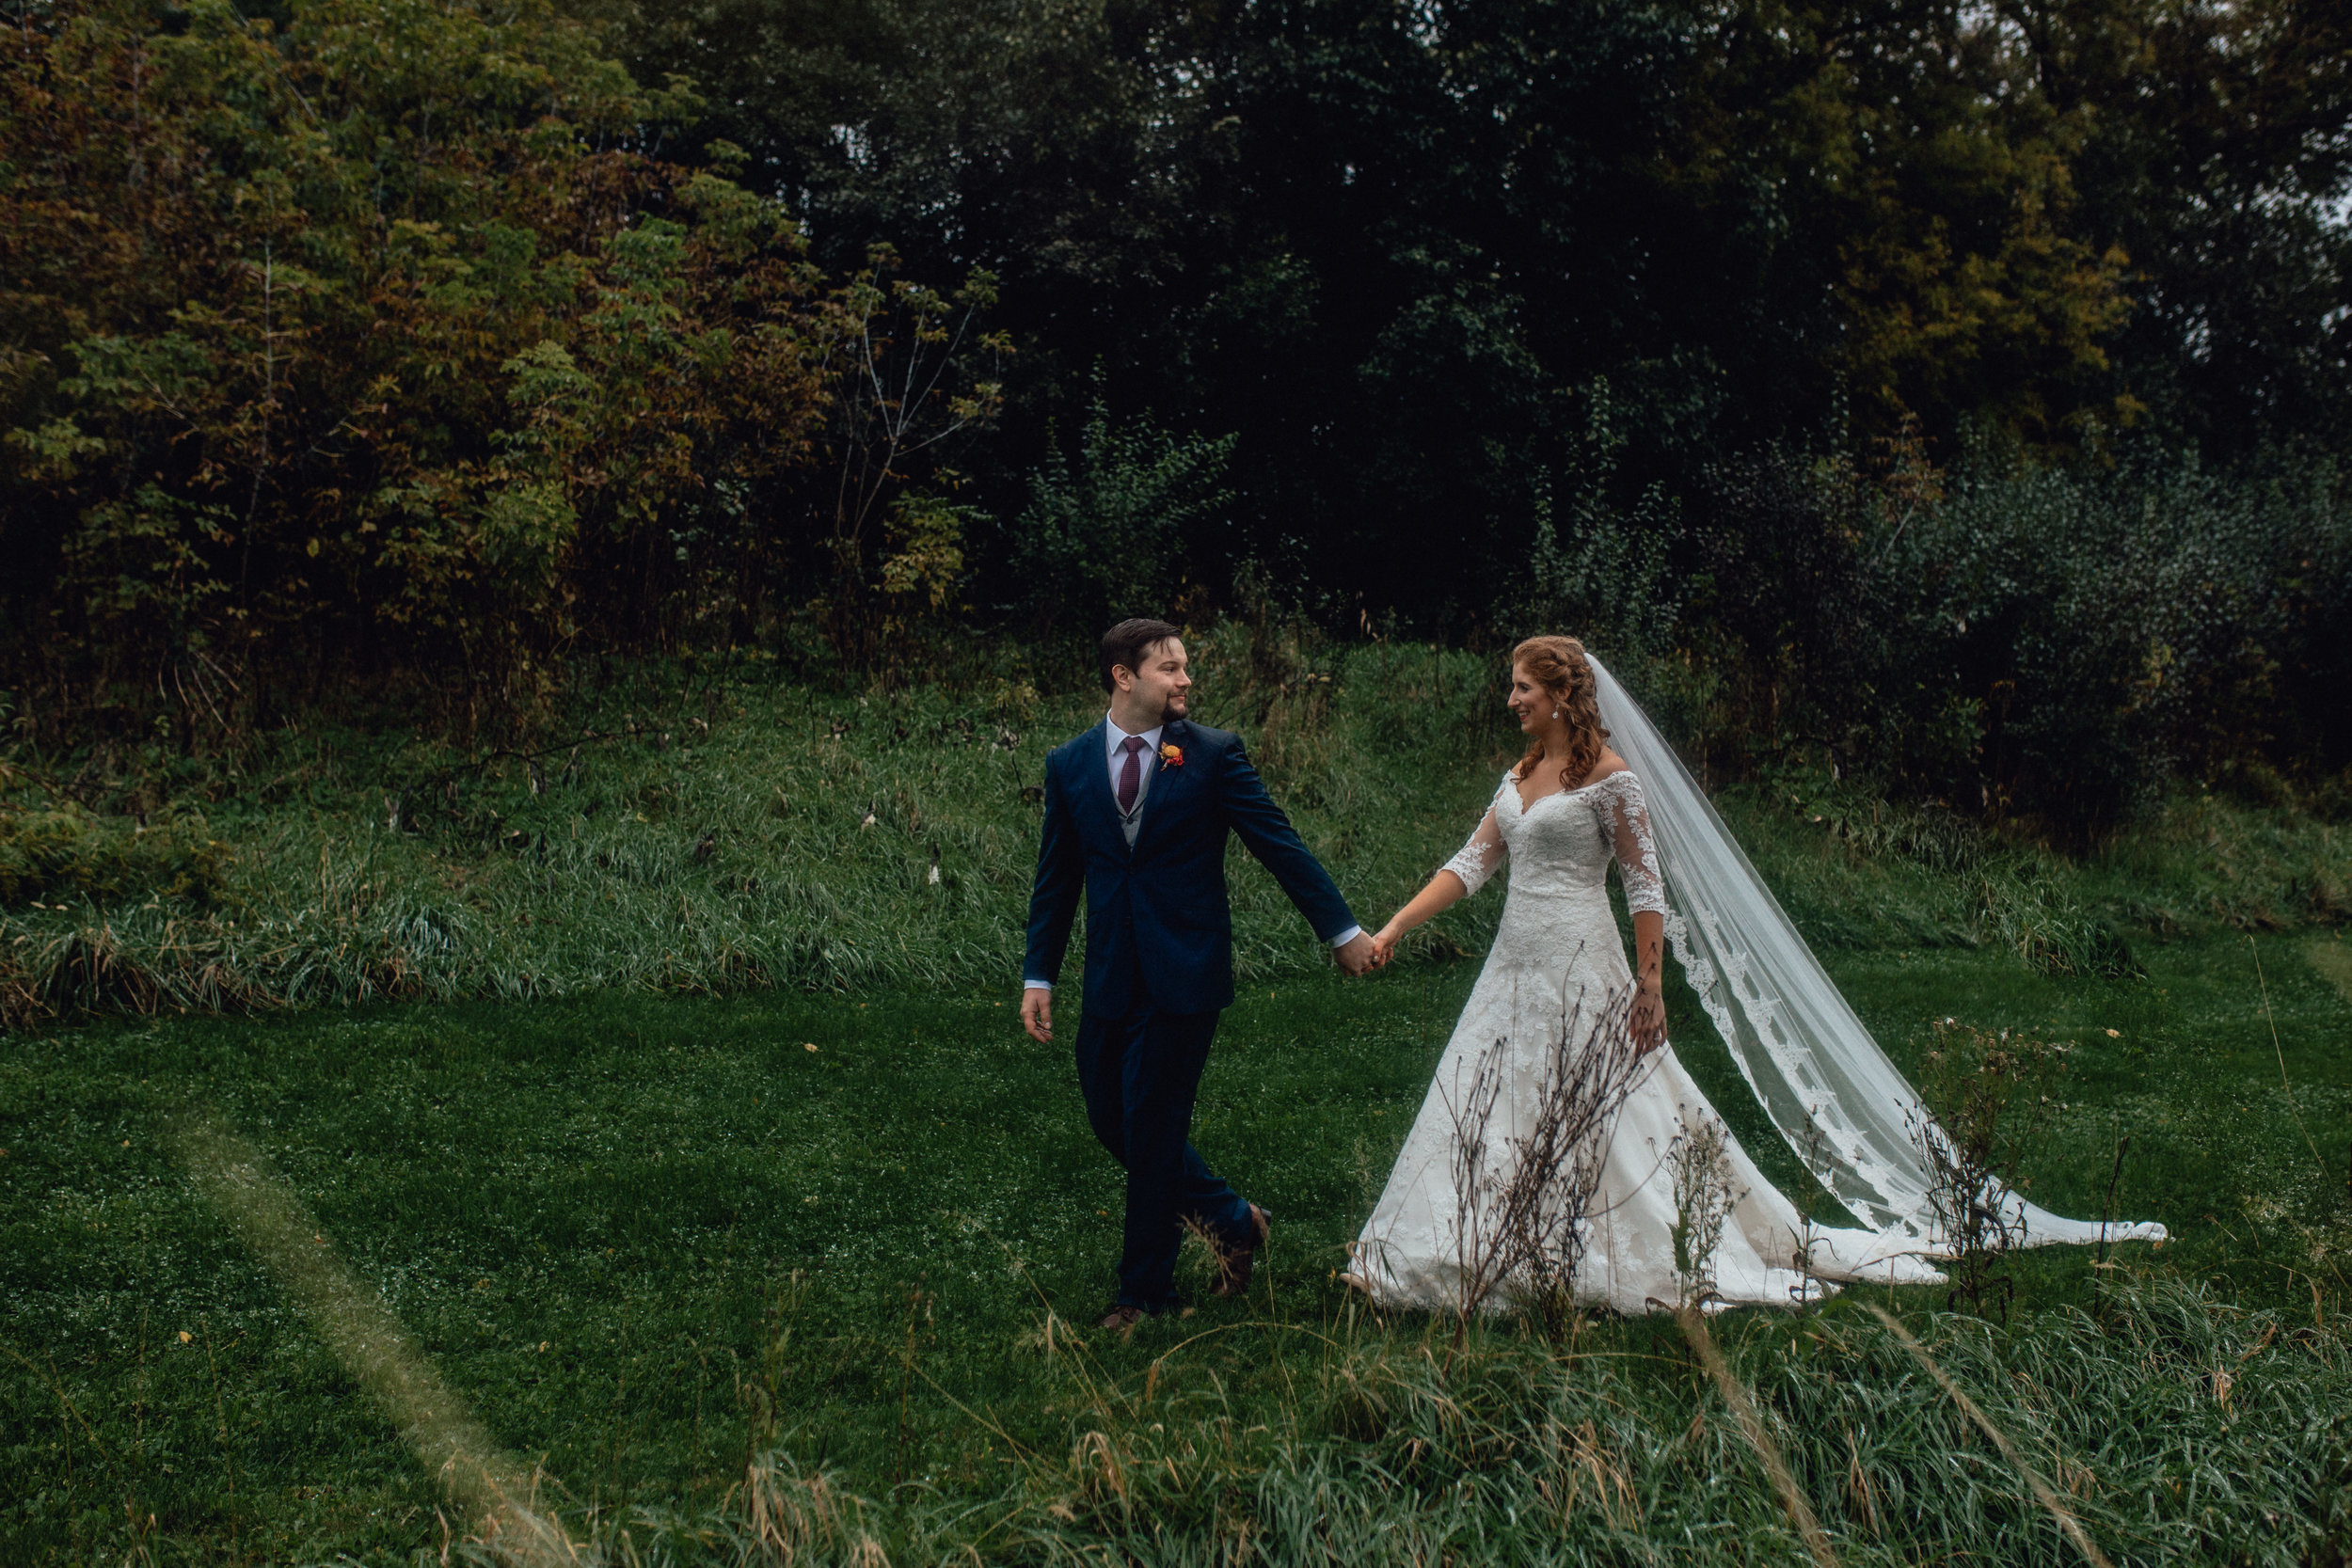 bride-and-groom-walking-in-moody-field-portrait-at-rustic-manor-1848.jpg